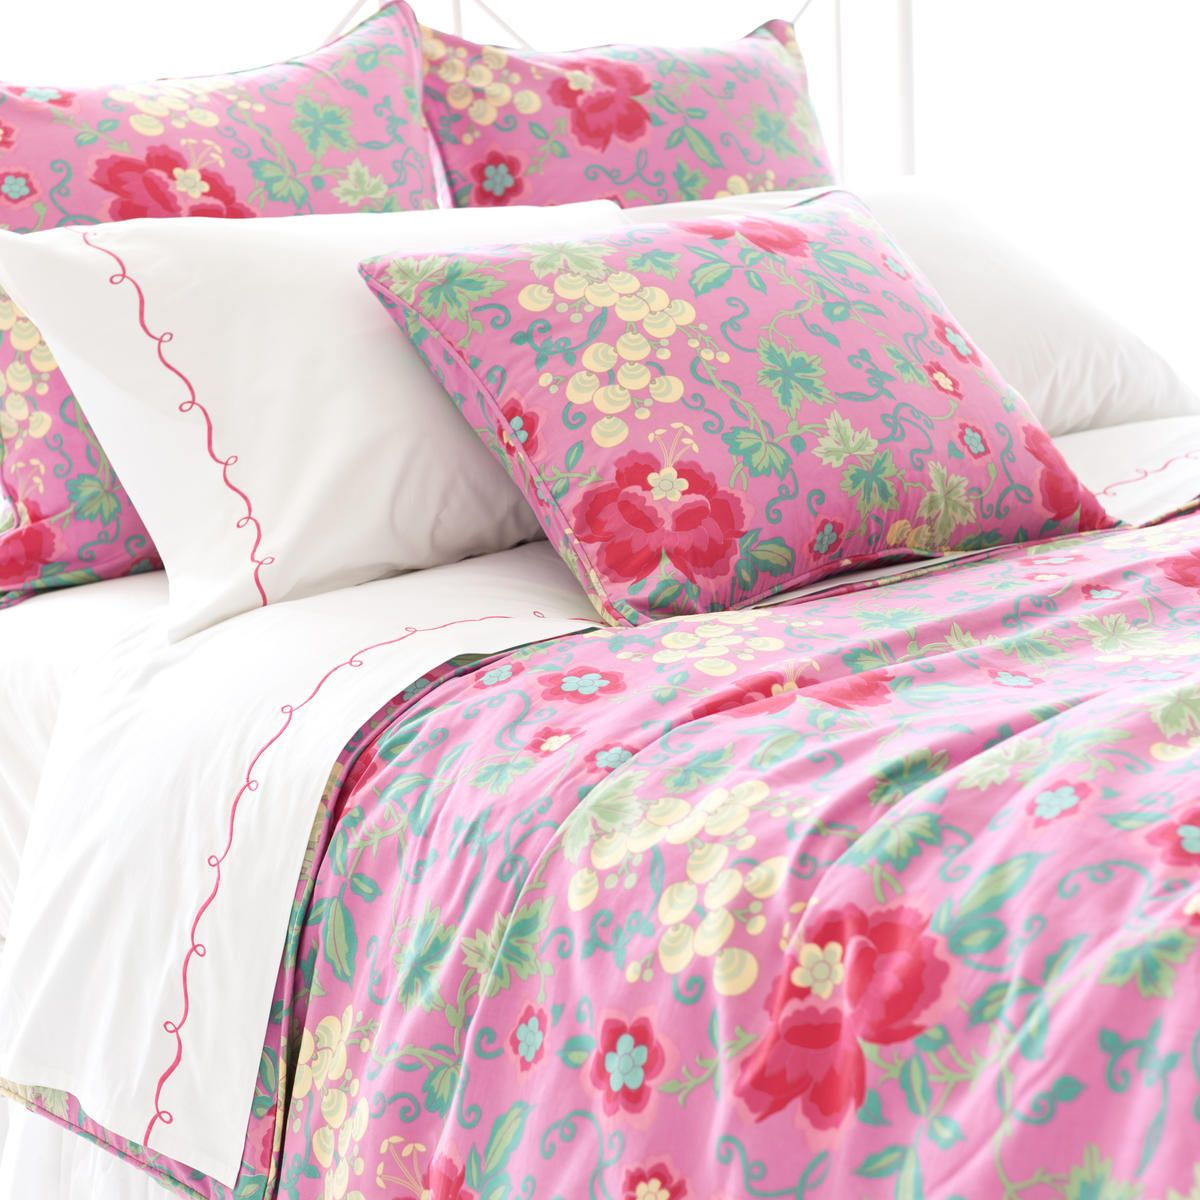 The Outlet Ume Pink Duvet Cover We're head over heels